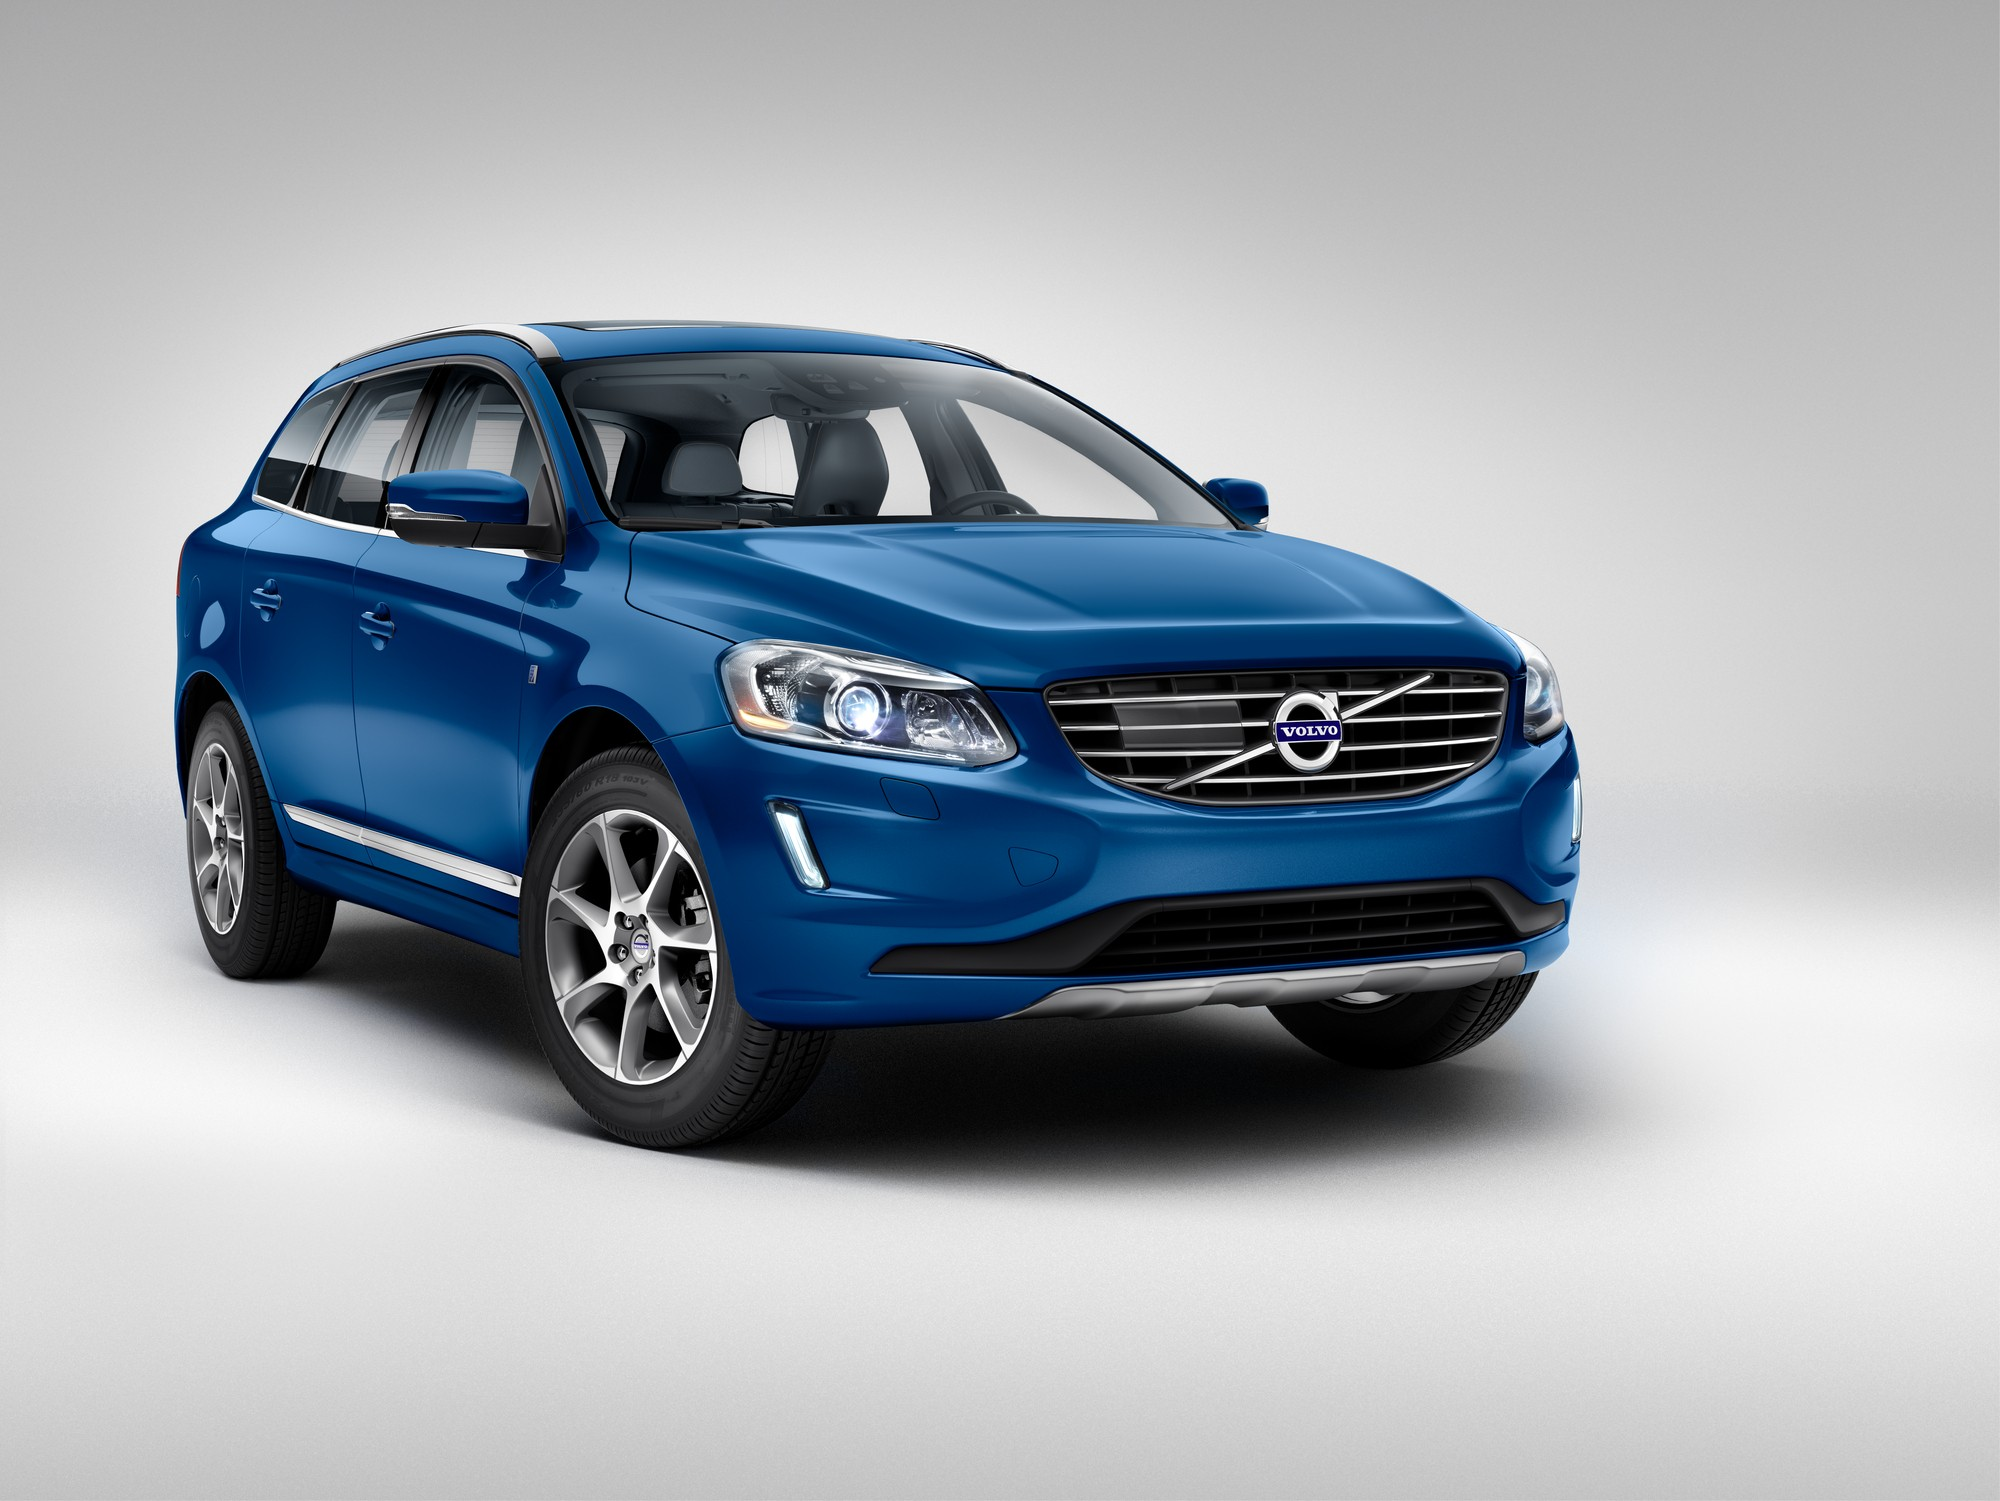 2014 volvo xc60 t5 ocean race edition exterior and interior.